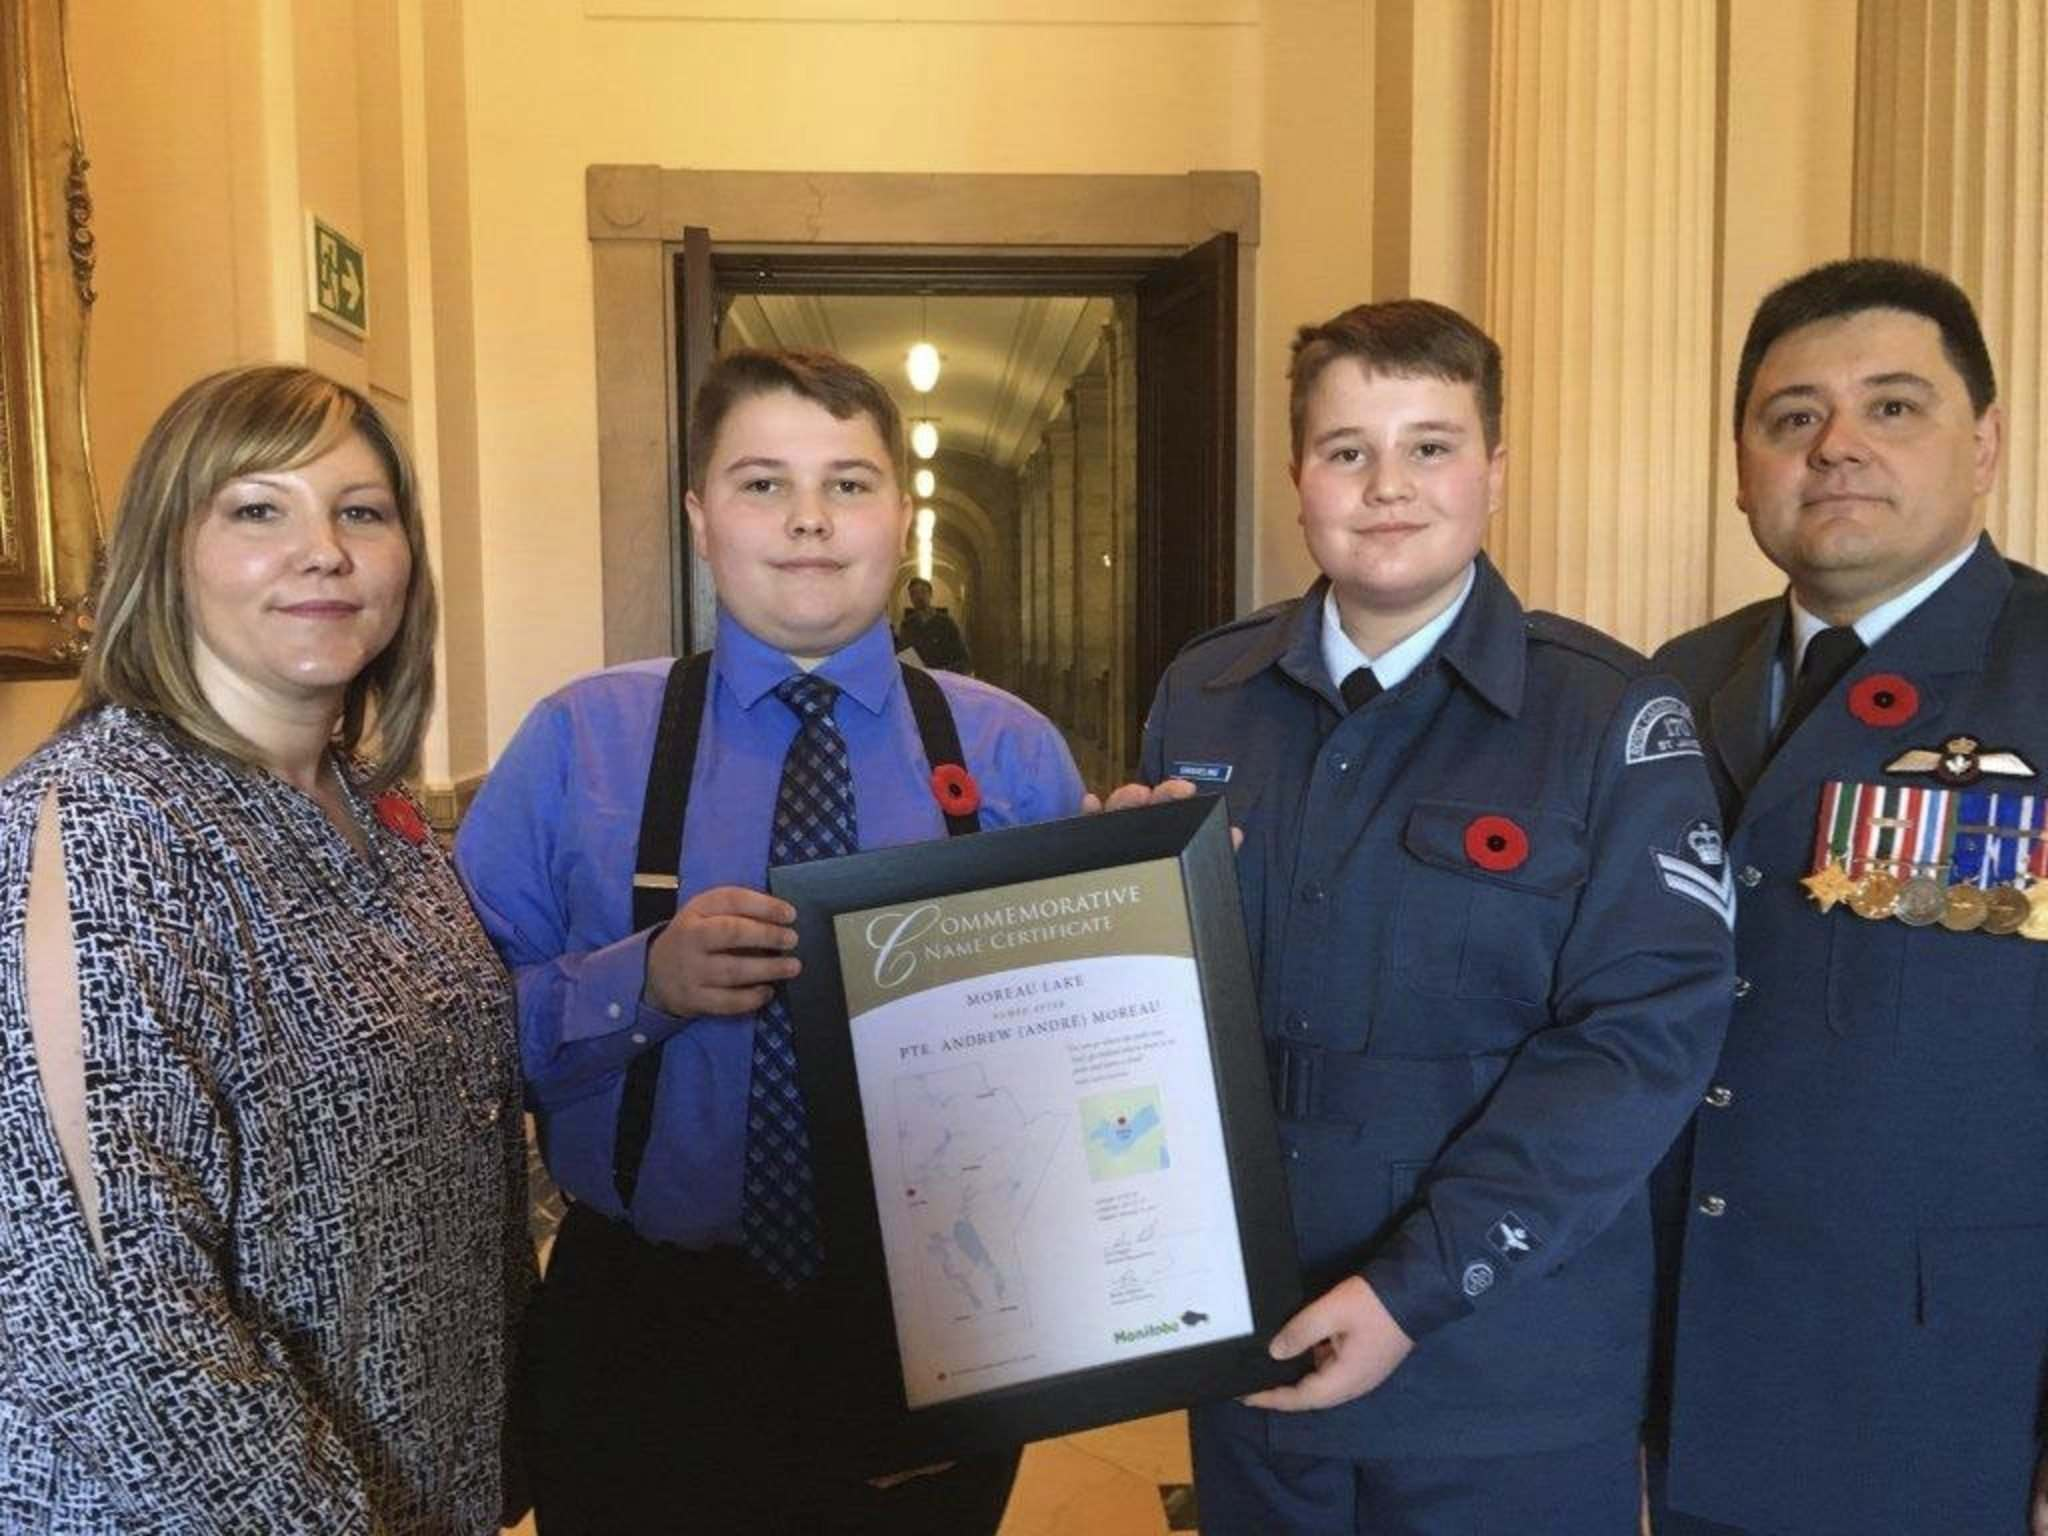 CAROL SANDERS / WINNIPEG FREE PRESS</p><p>Danielle Burr (left to right), with her son, Carson Burr, as well as nephew Ethan Graveline and brother Maj. Jason Graveline, hold a plaque commemorating their ancestor, Pte. Andrew Moreau, who fought and died in the First World War.</p></p>